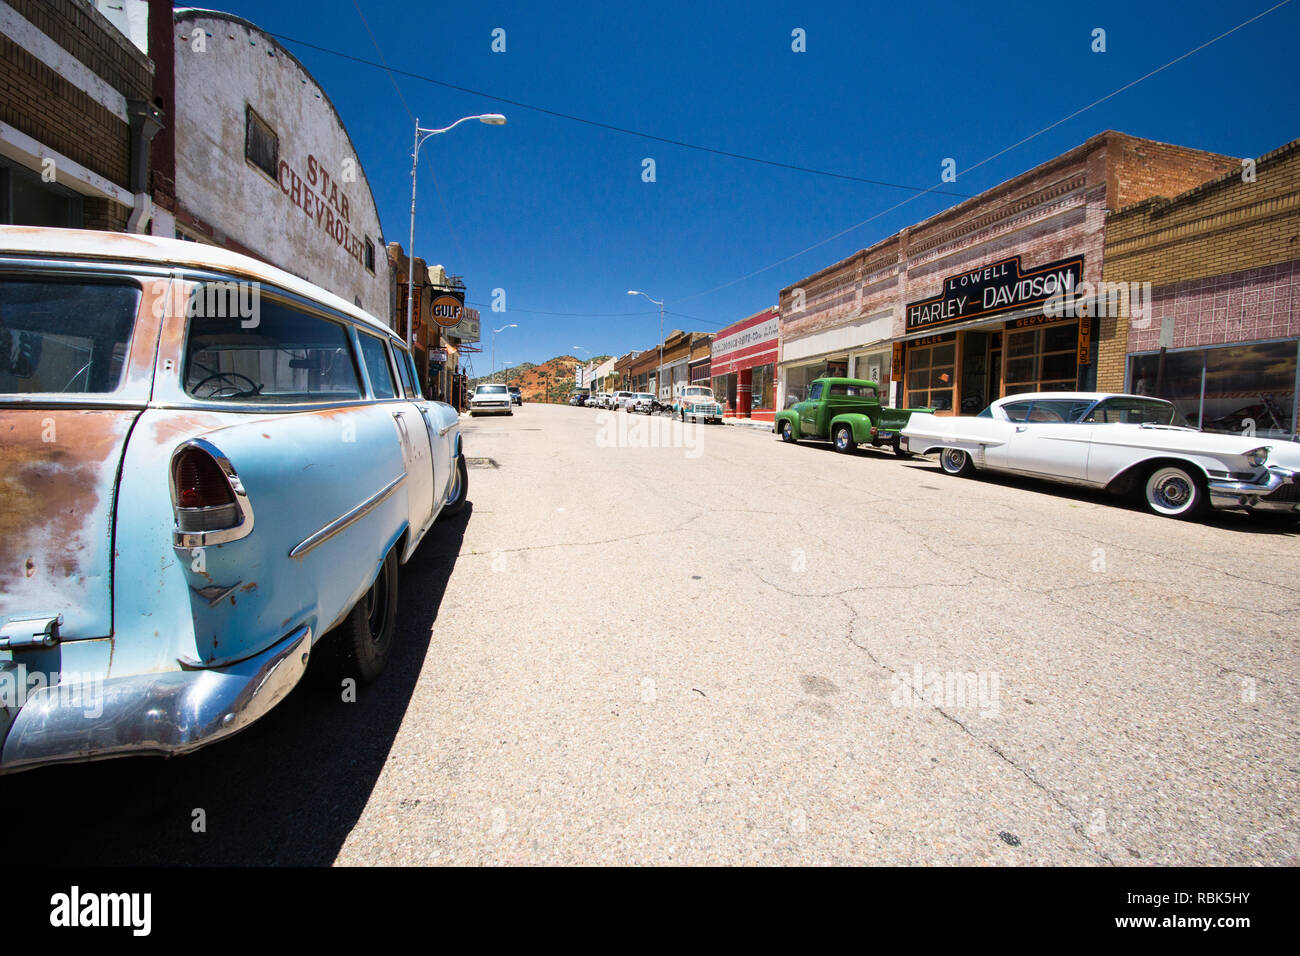 Bisbee, AZ, USA / 12 July 2016: historic ghost town of Lowell with the carefully renovated Erie street lined with cars and American culture icons - Stock Image